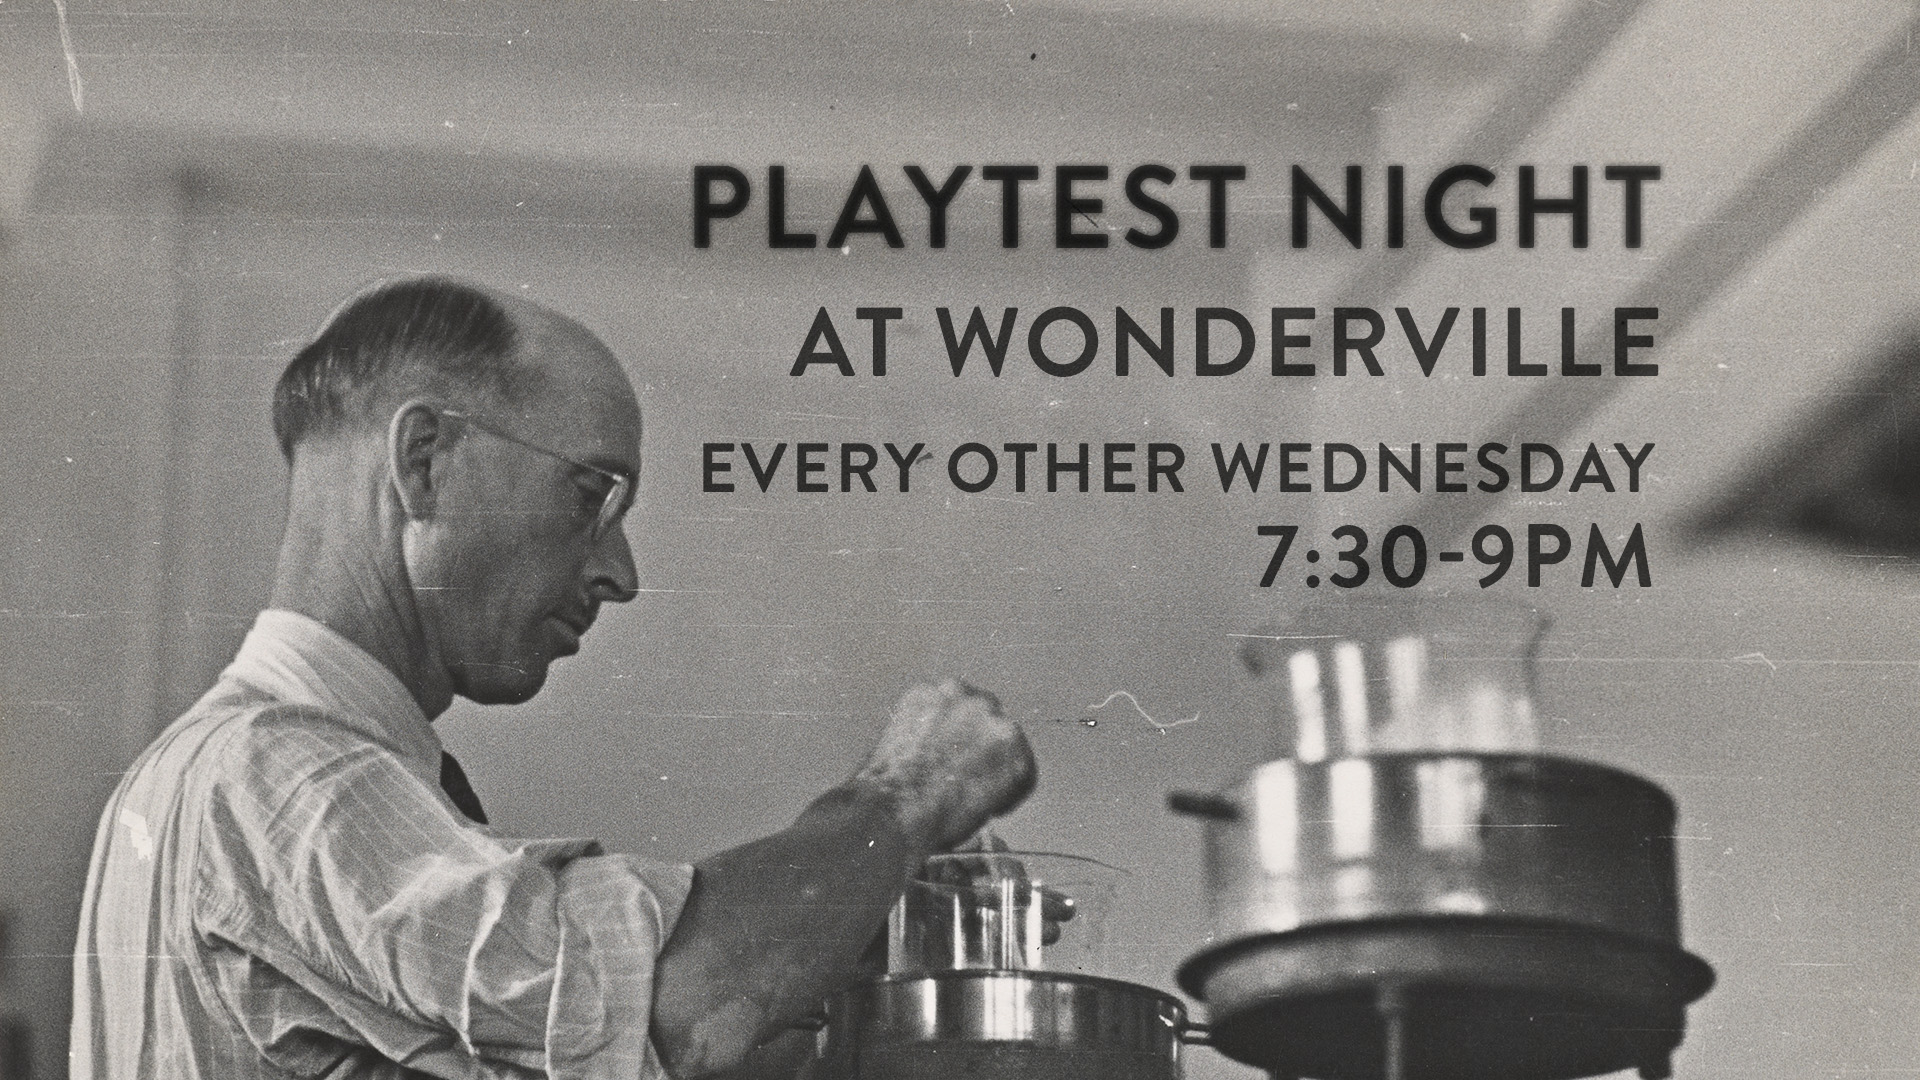 Playtest night is held on the 1st and 3rd Wednesday of every month at 7:30 at Wonderville  RSVP:  https://withfriends.co/event/2099004/playtest_night   (Optional) Game Info Form:  https://docs.google.com/forms/d/e/1FAIpQLSeWoaquM1YGzXn9GIK0rUf2TrK4OHgffcJLYcEr2kUzBseQkg/viewform?usp=sf_link